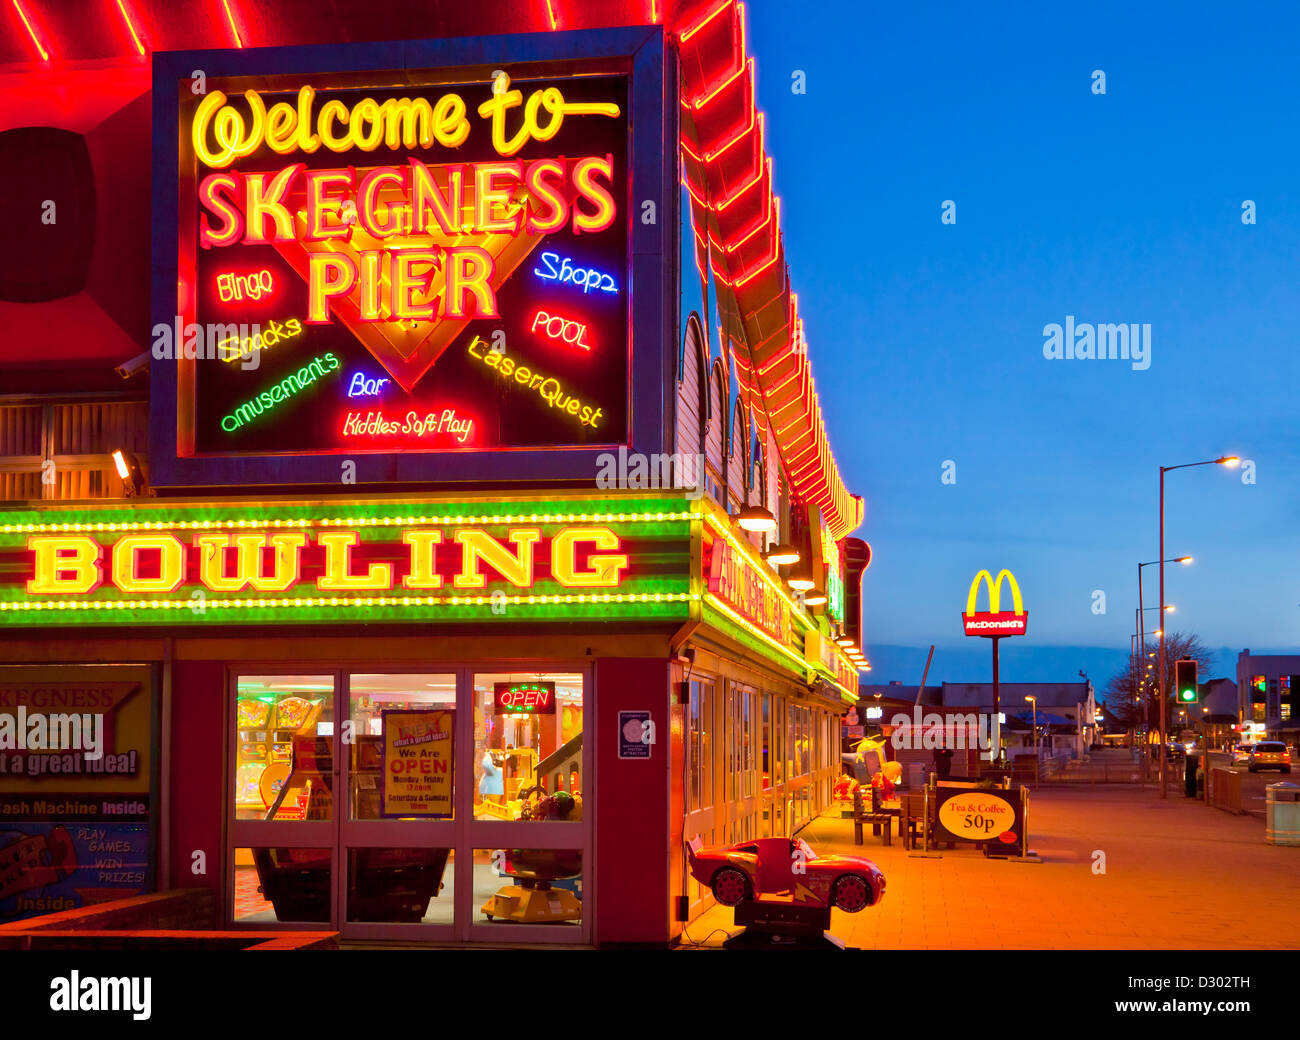 neon signs for bowling, amusements and Skegness Pier at the seafront Lincolnshire England UK GB EU Europe Stock Photo